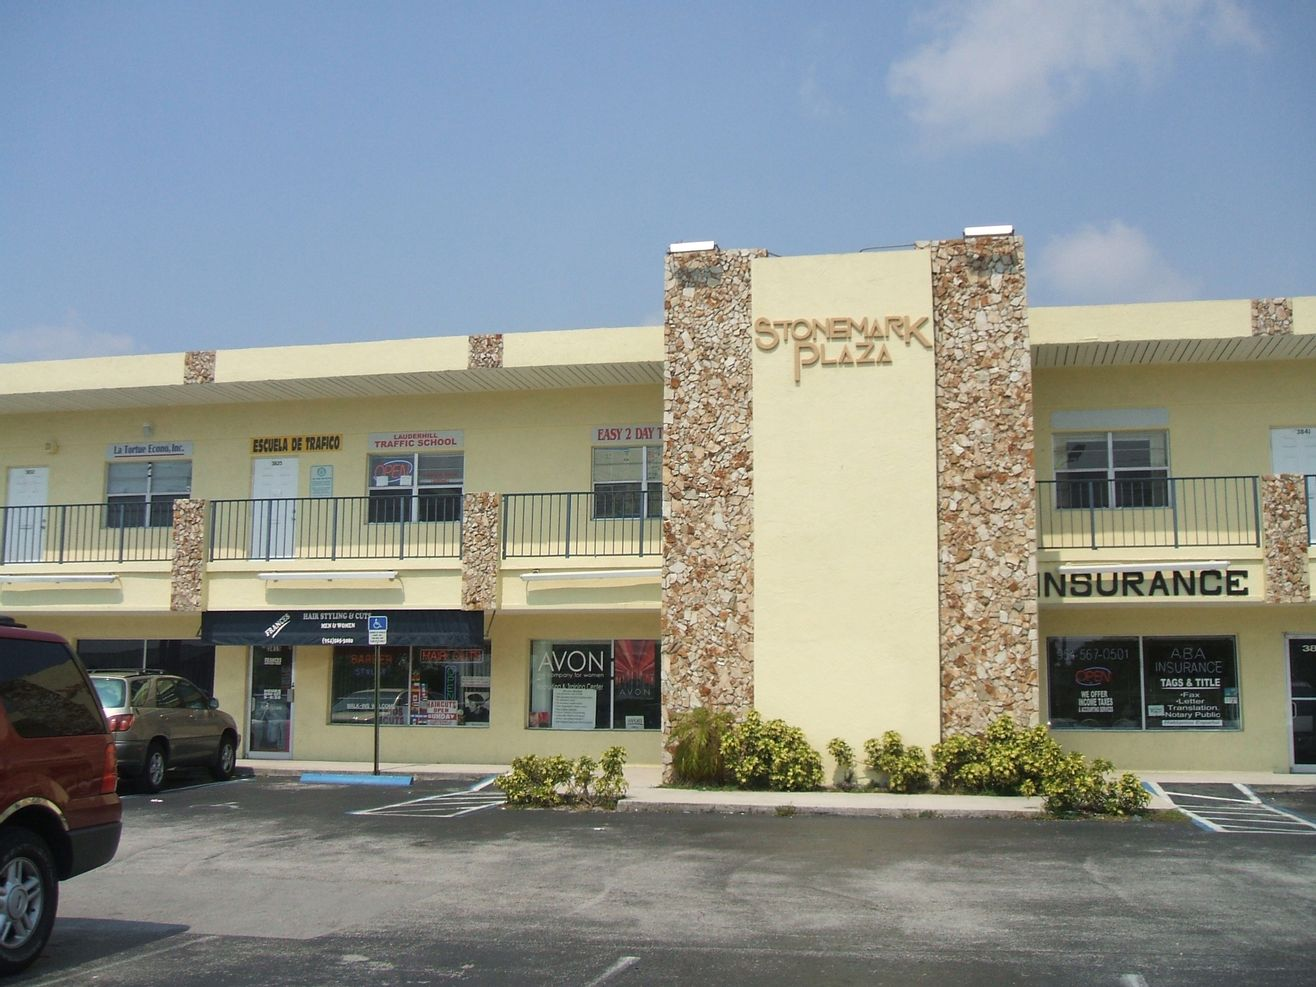 Stonemark Plaza Oakland Park Retail Storefronts for Rent